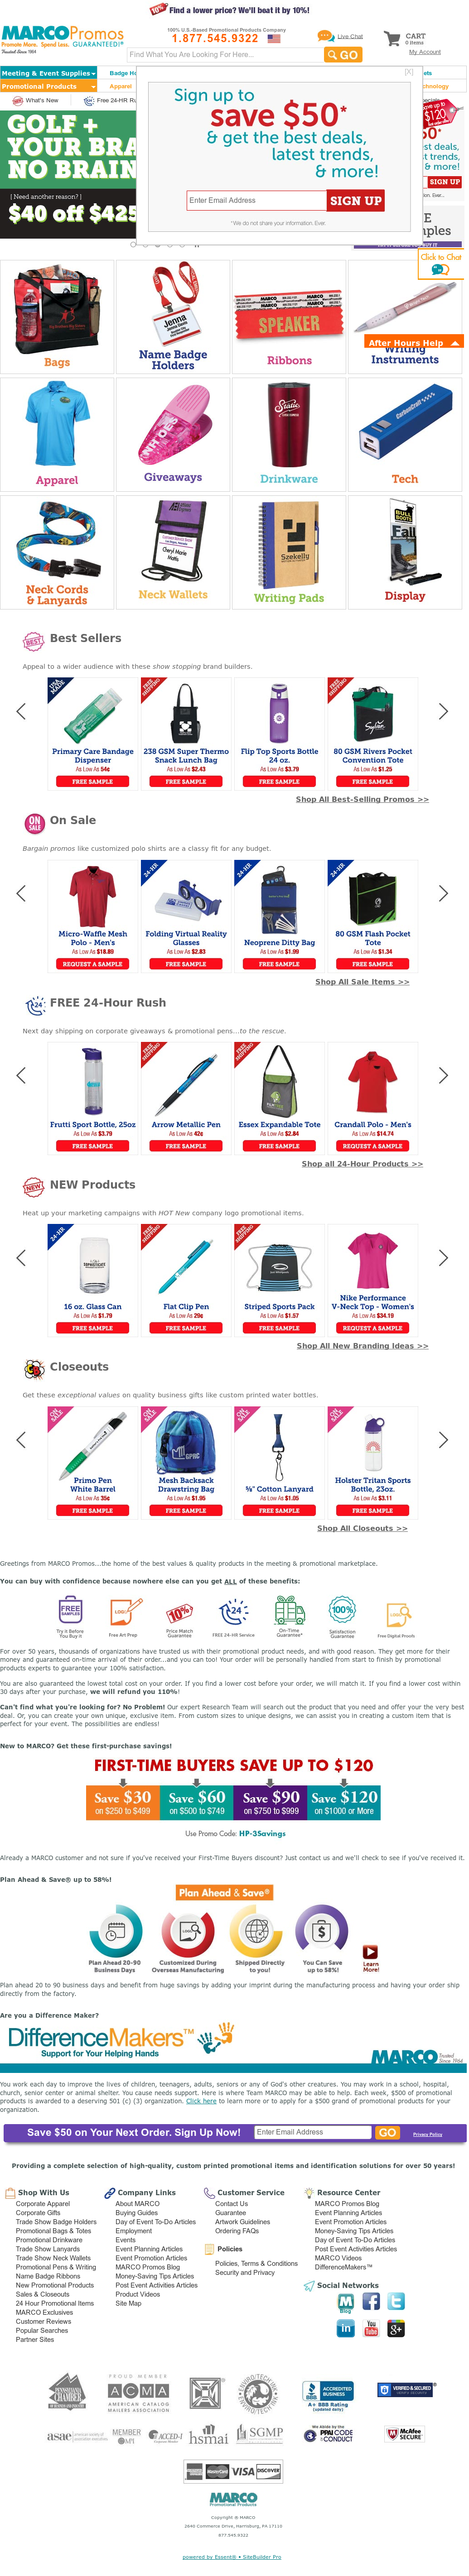 Marco promotional products Competitors, Revenue and Employees